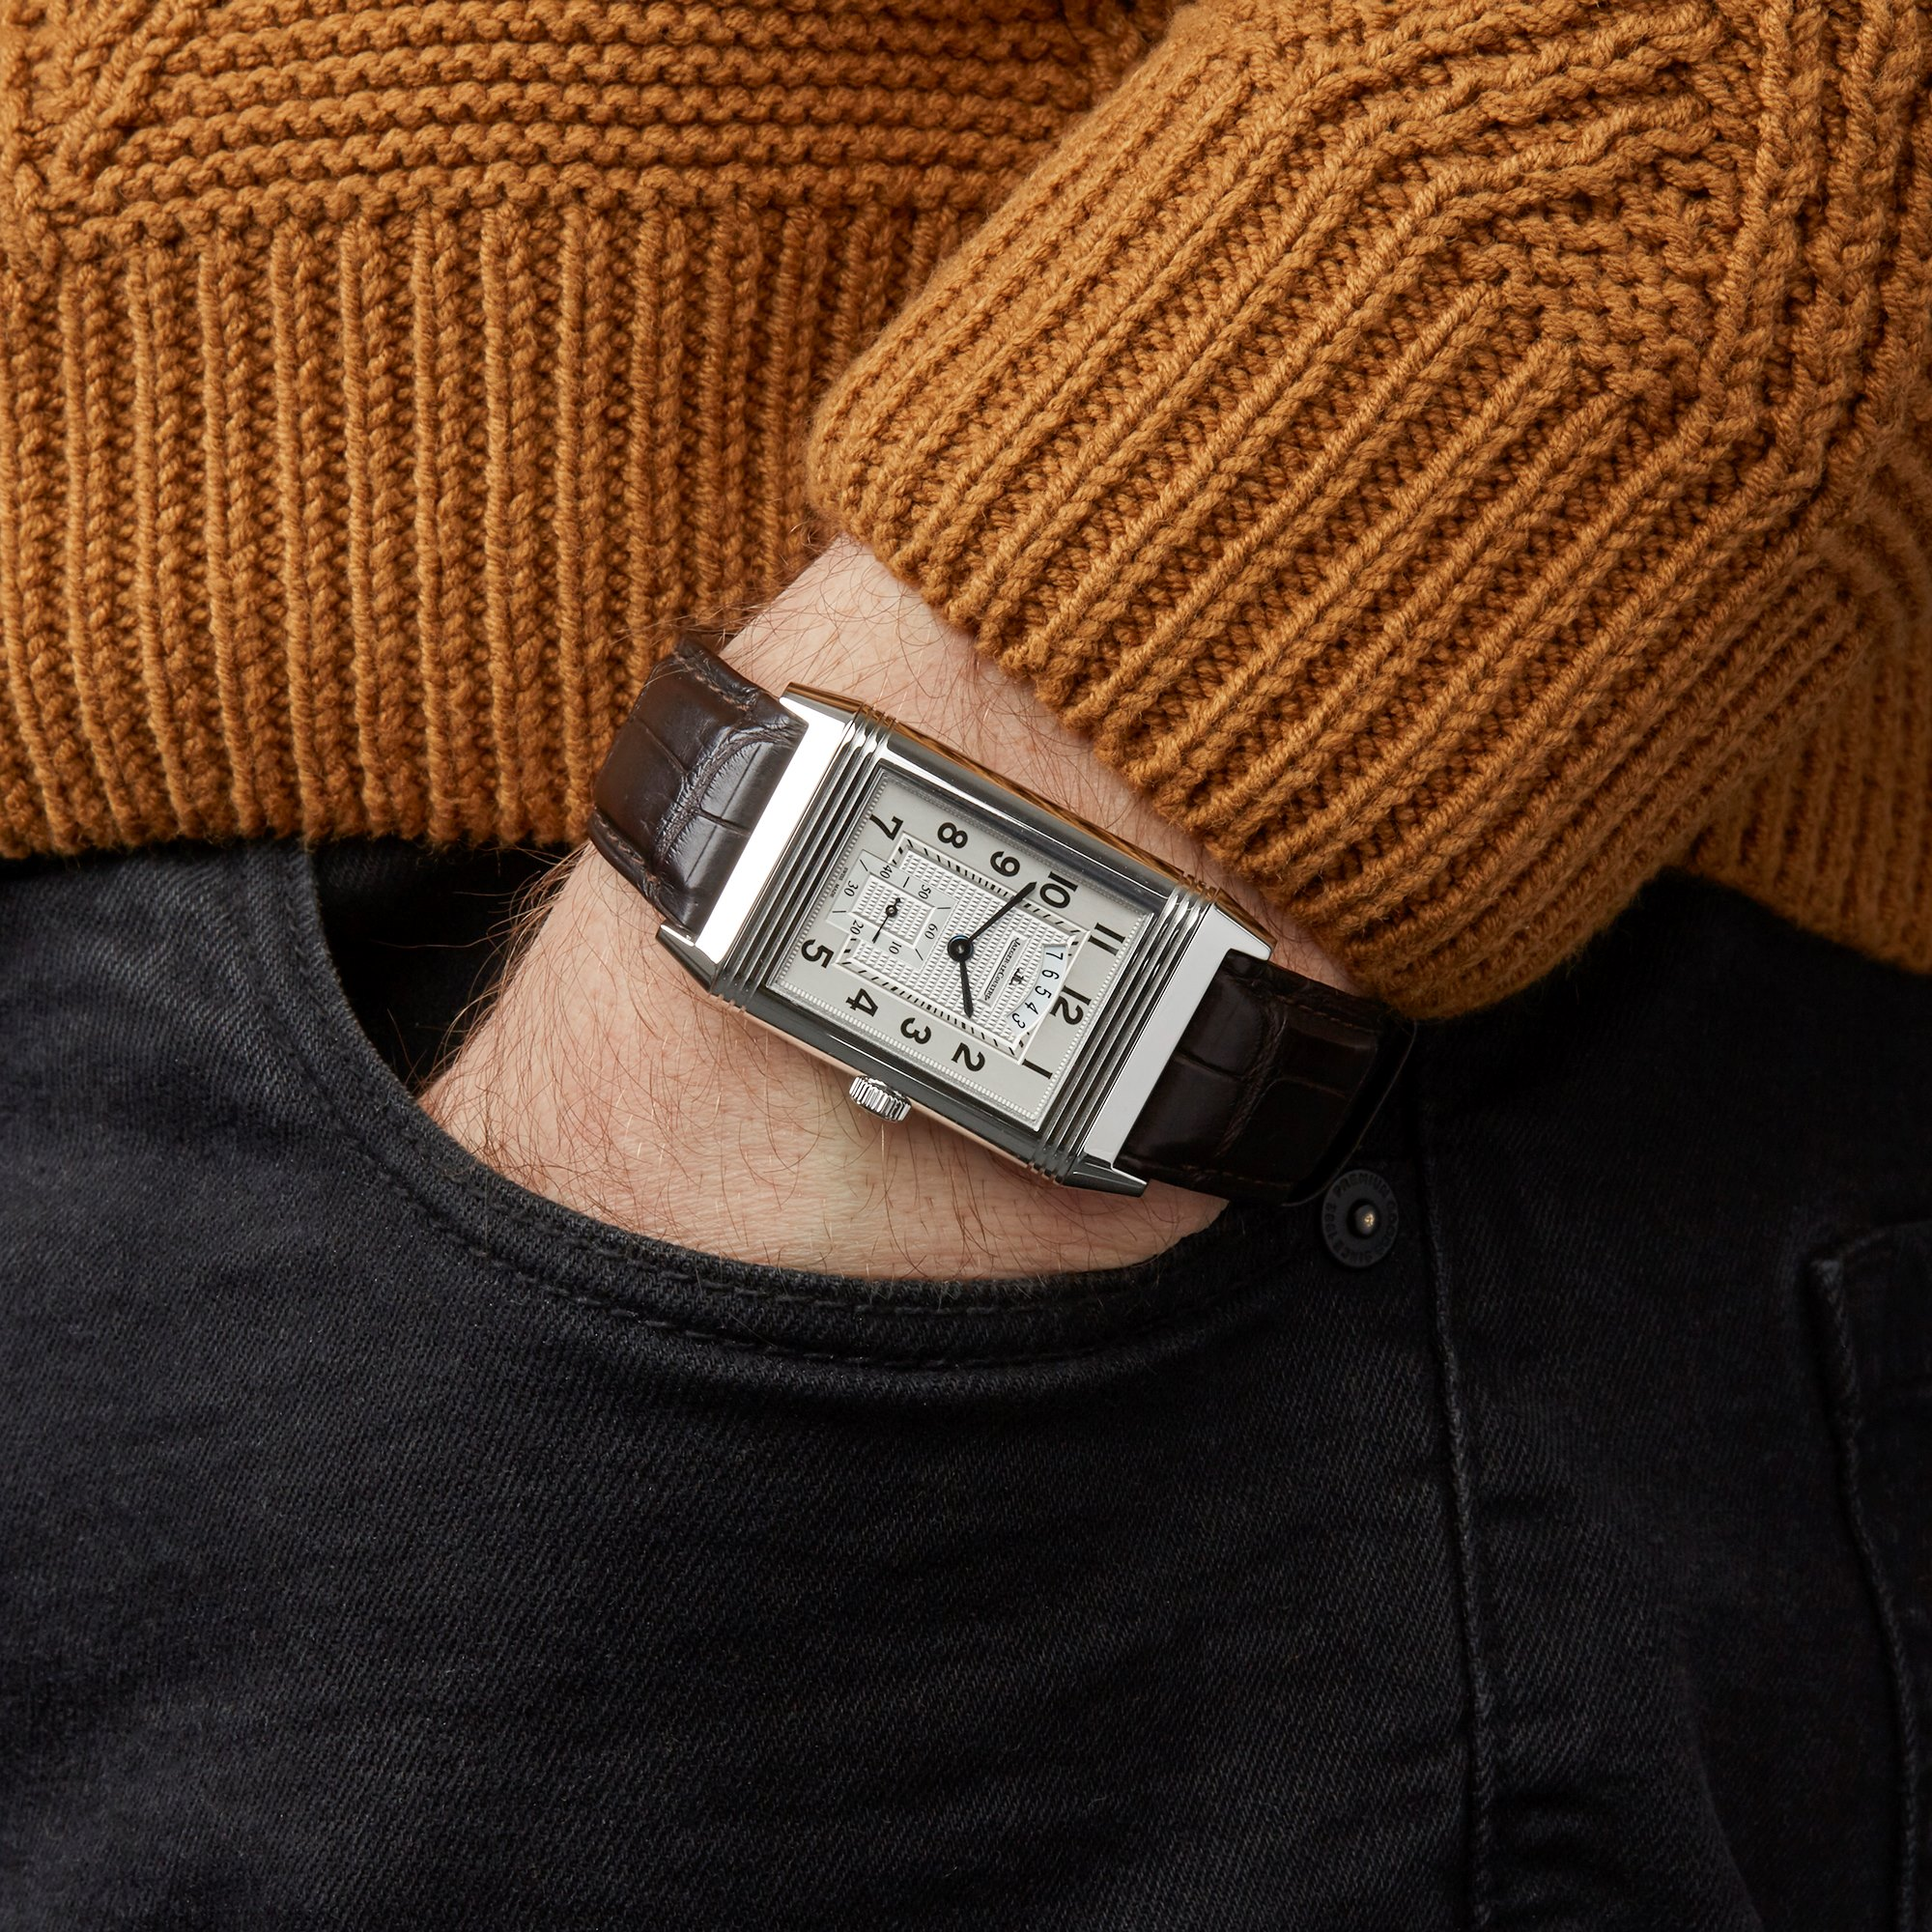 Jaeger-LeCoultre Reverso Duoface Stainless Steel 273.8.85